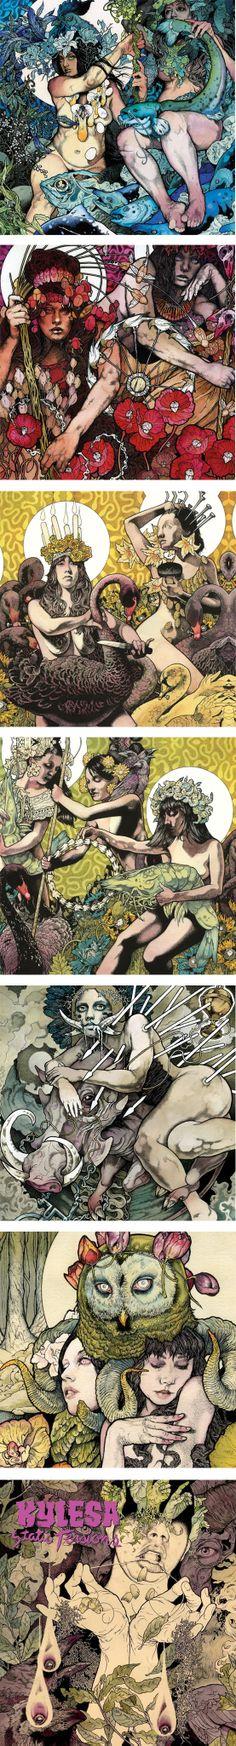 John Dyer Baizley, Painter and Illustrator from the stoner band Baroness.